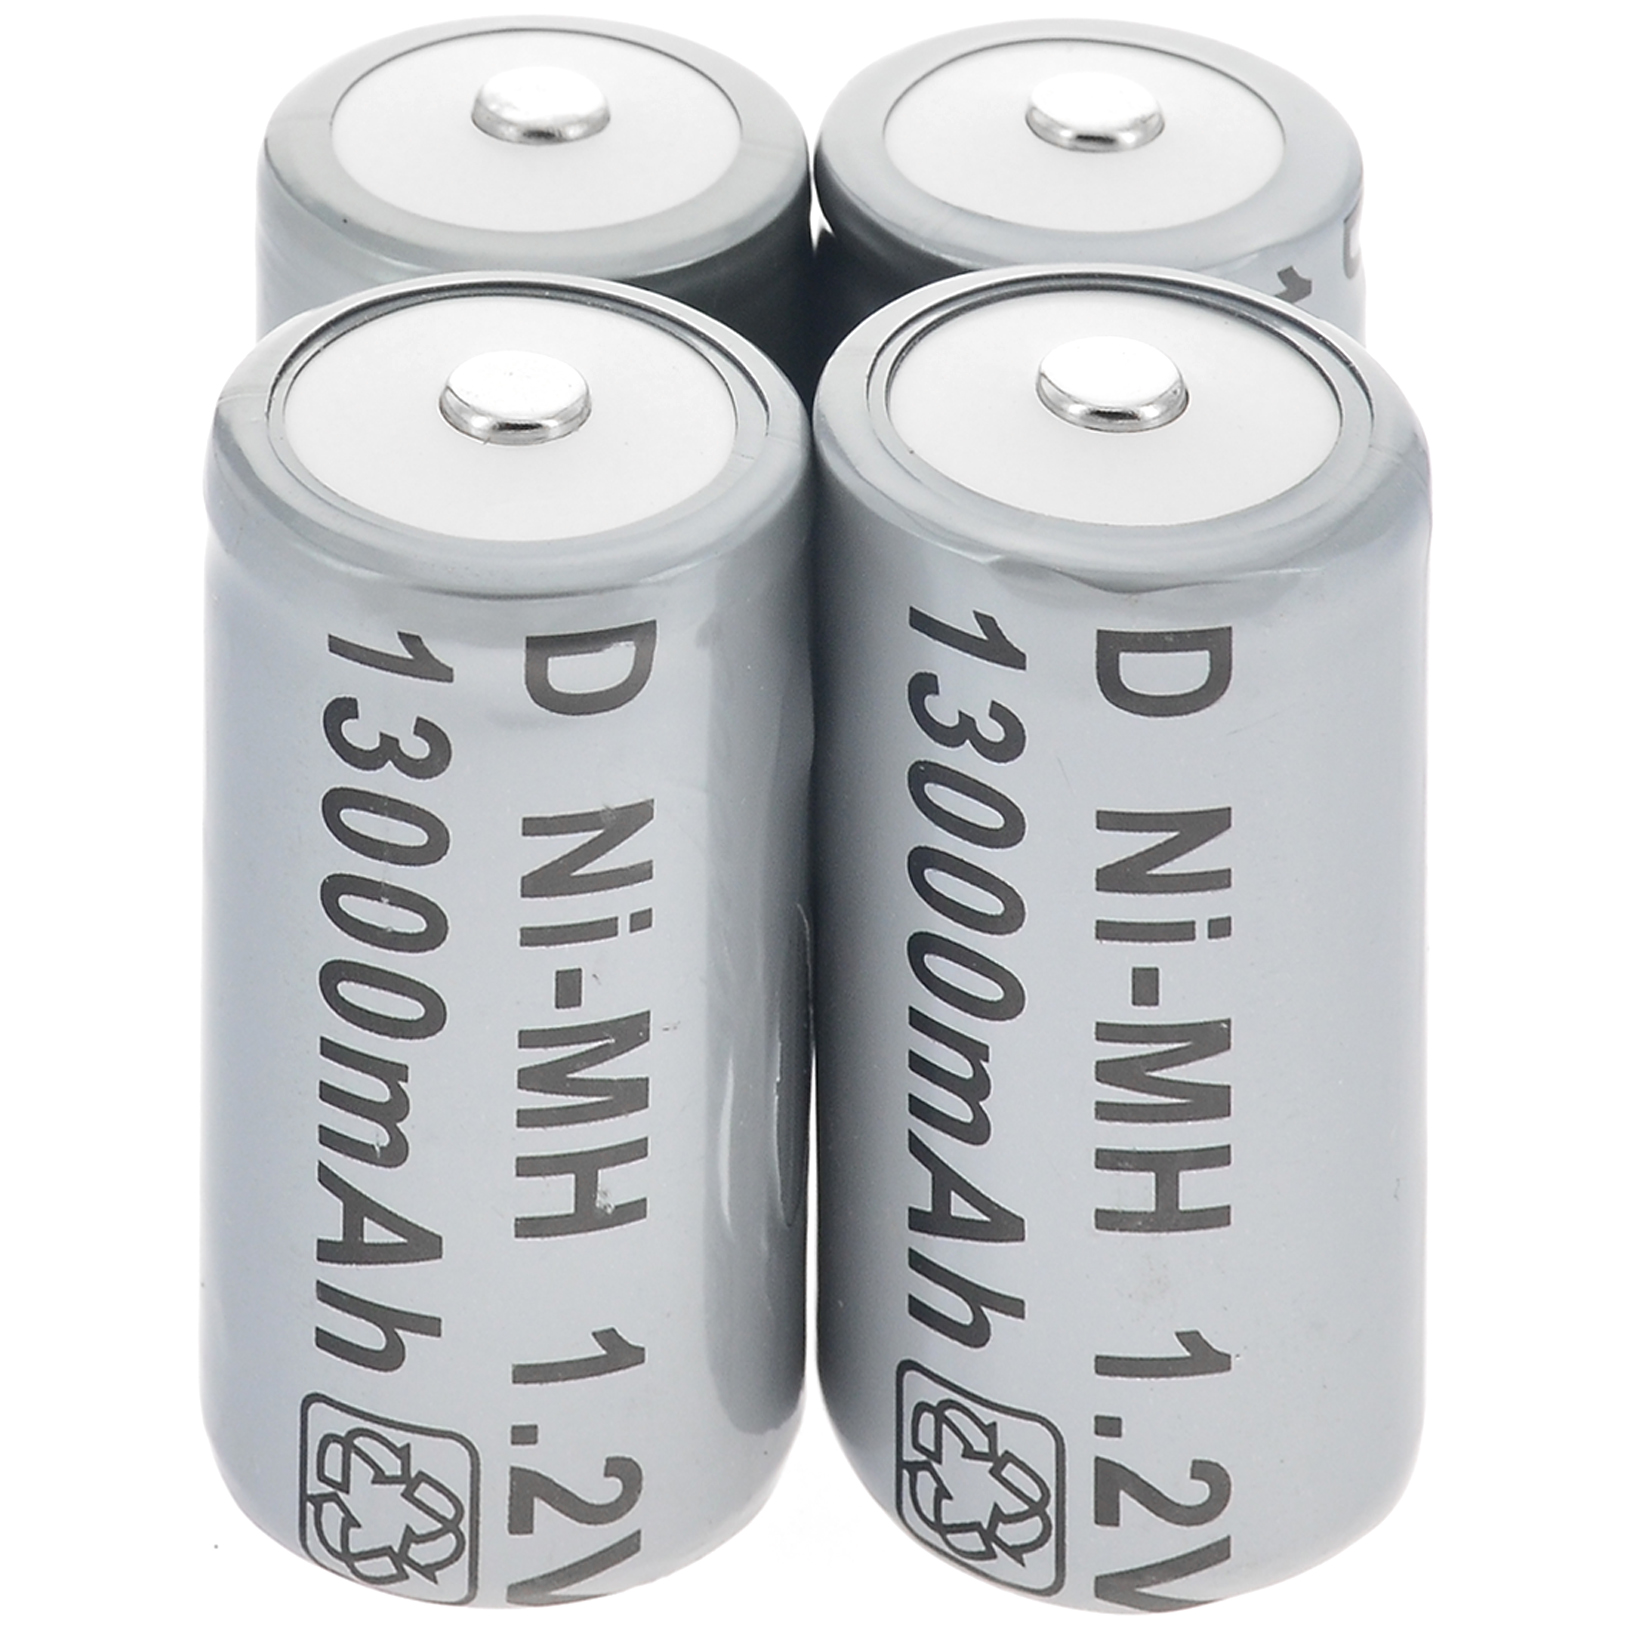 1/2/4/8/10/16pcs <font><b>1.2V</b></font> <font><b>Ni</b></font>-<font><b>MH</b></font> 13000mAh Rechargeable Battery Cell Grey D Size D-Type D Type image